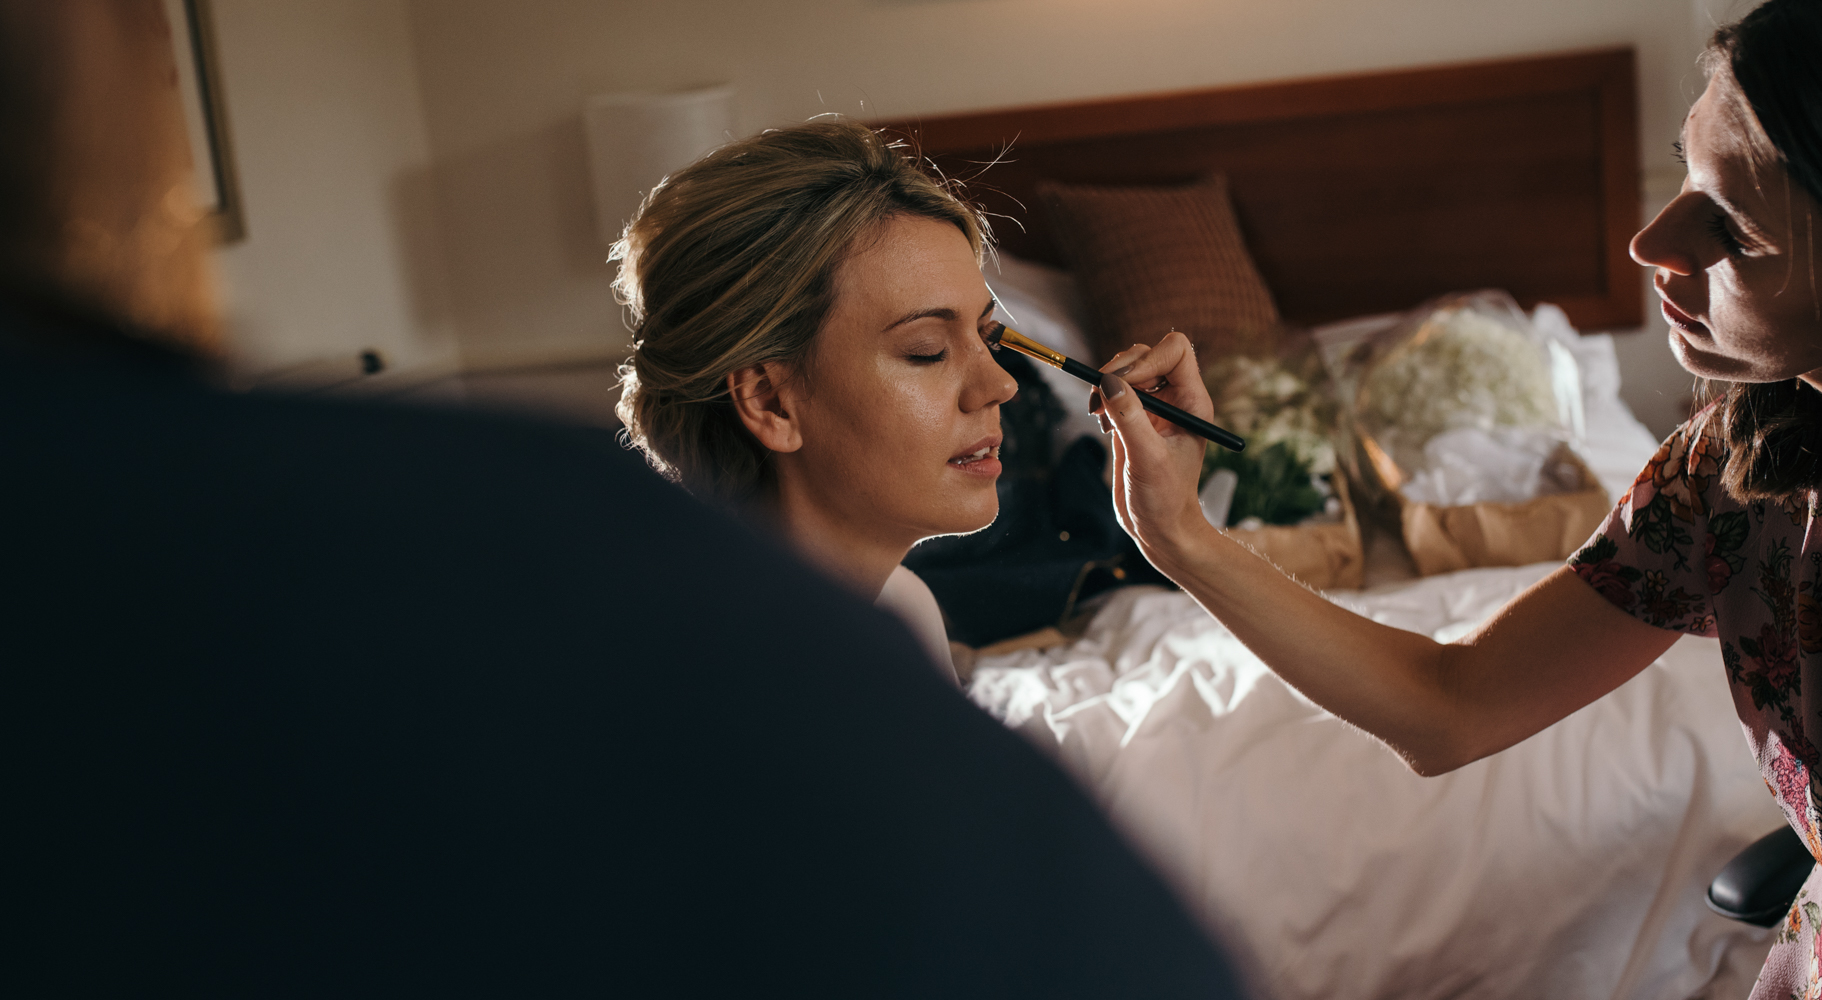 The bride having makeup and hair done during morning preparations